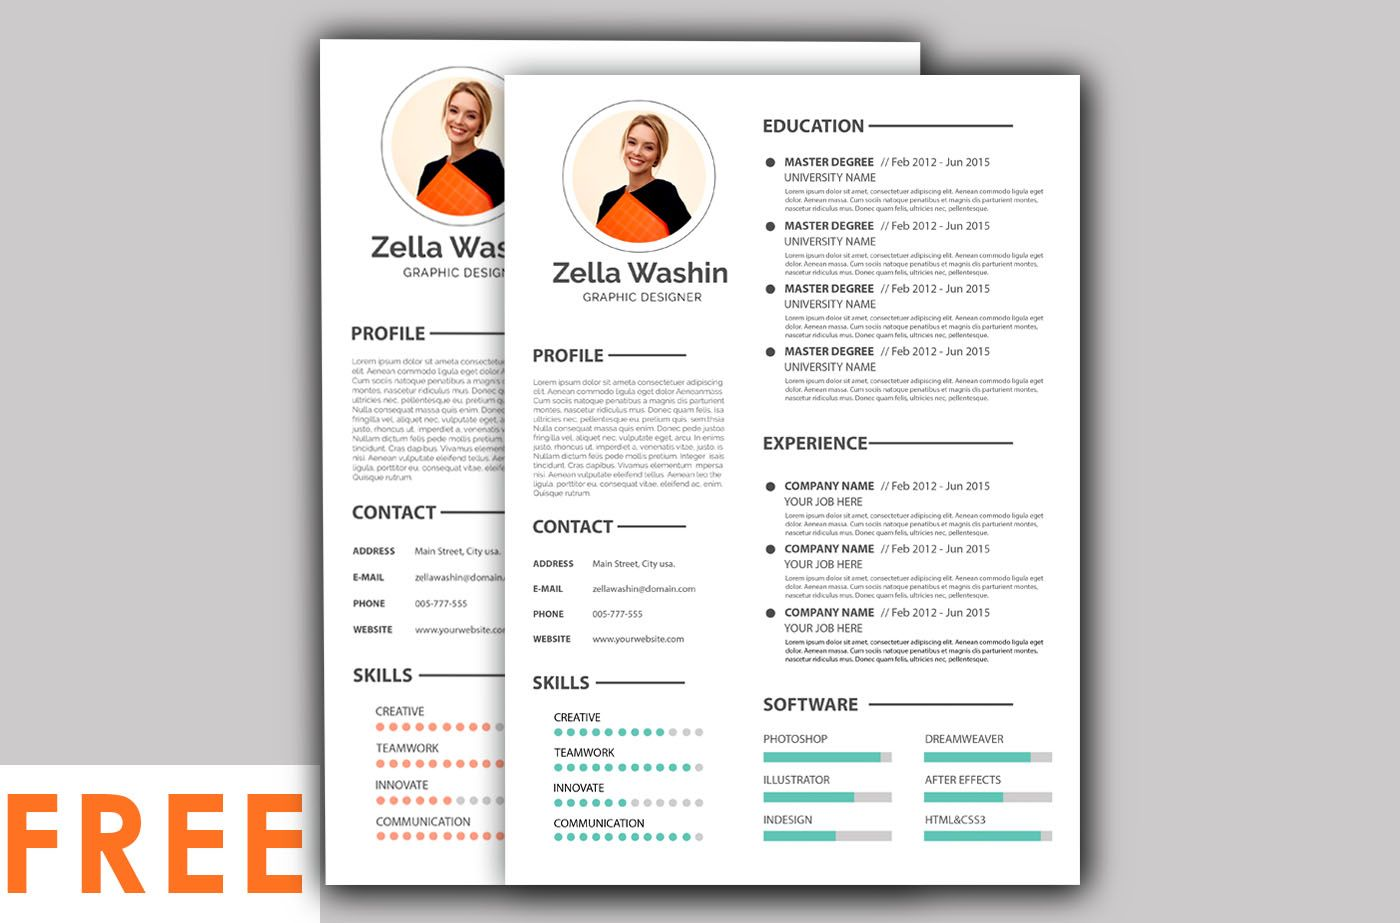 PSD Free Resume Templates 2020 in 2020 Resume template